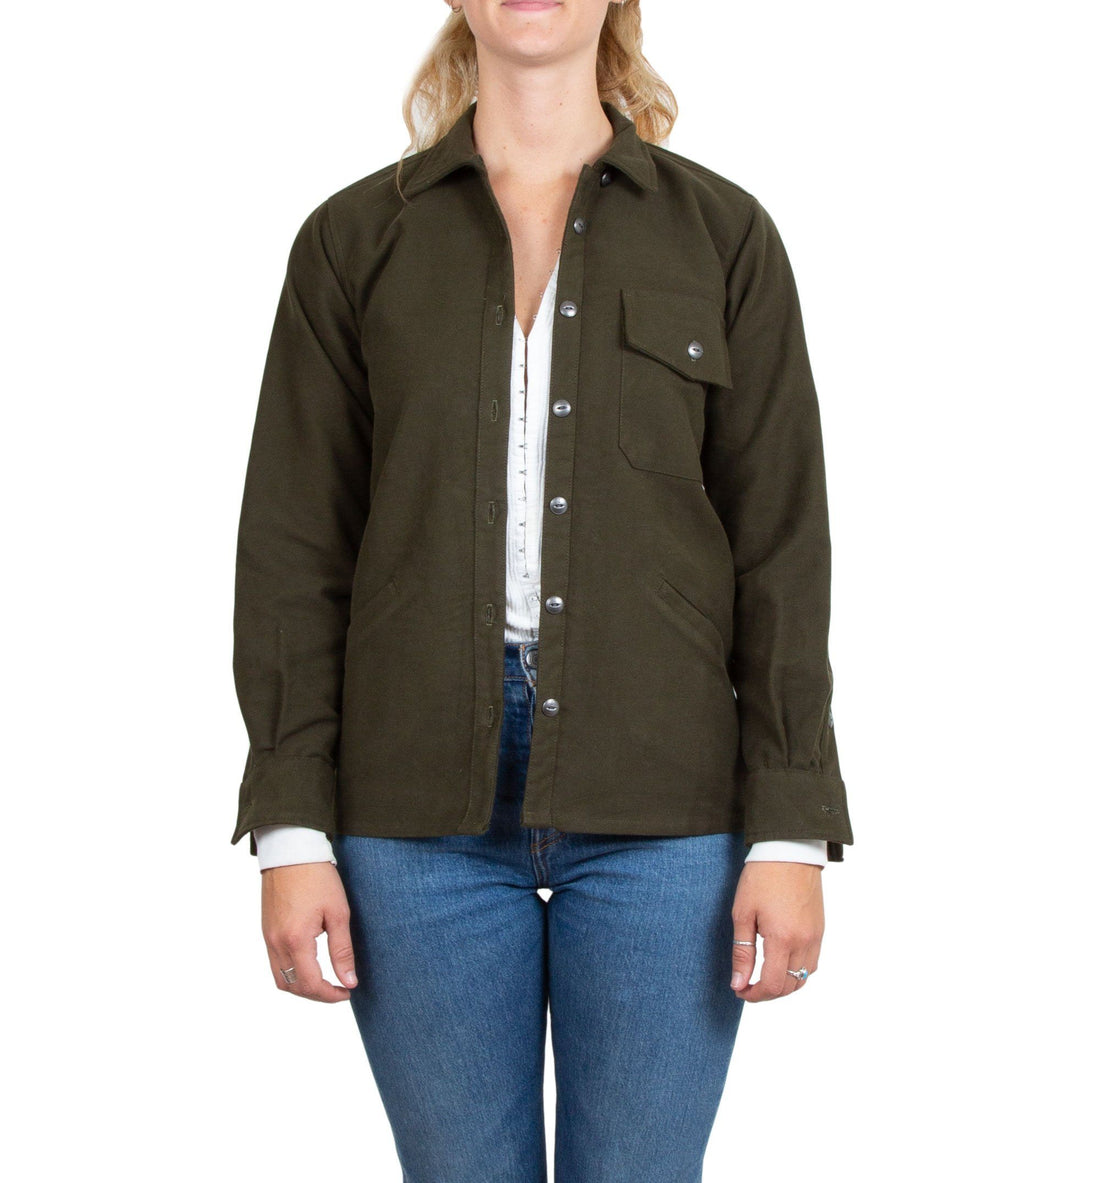 Women's Yellowstone Shirt Jacket - Tops - Iron and Resin